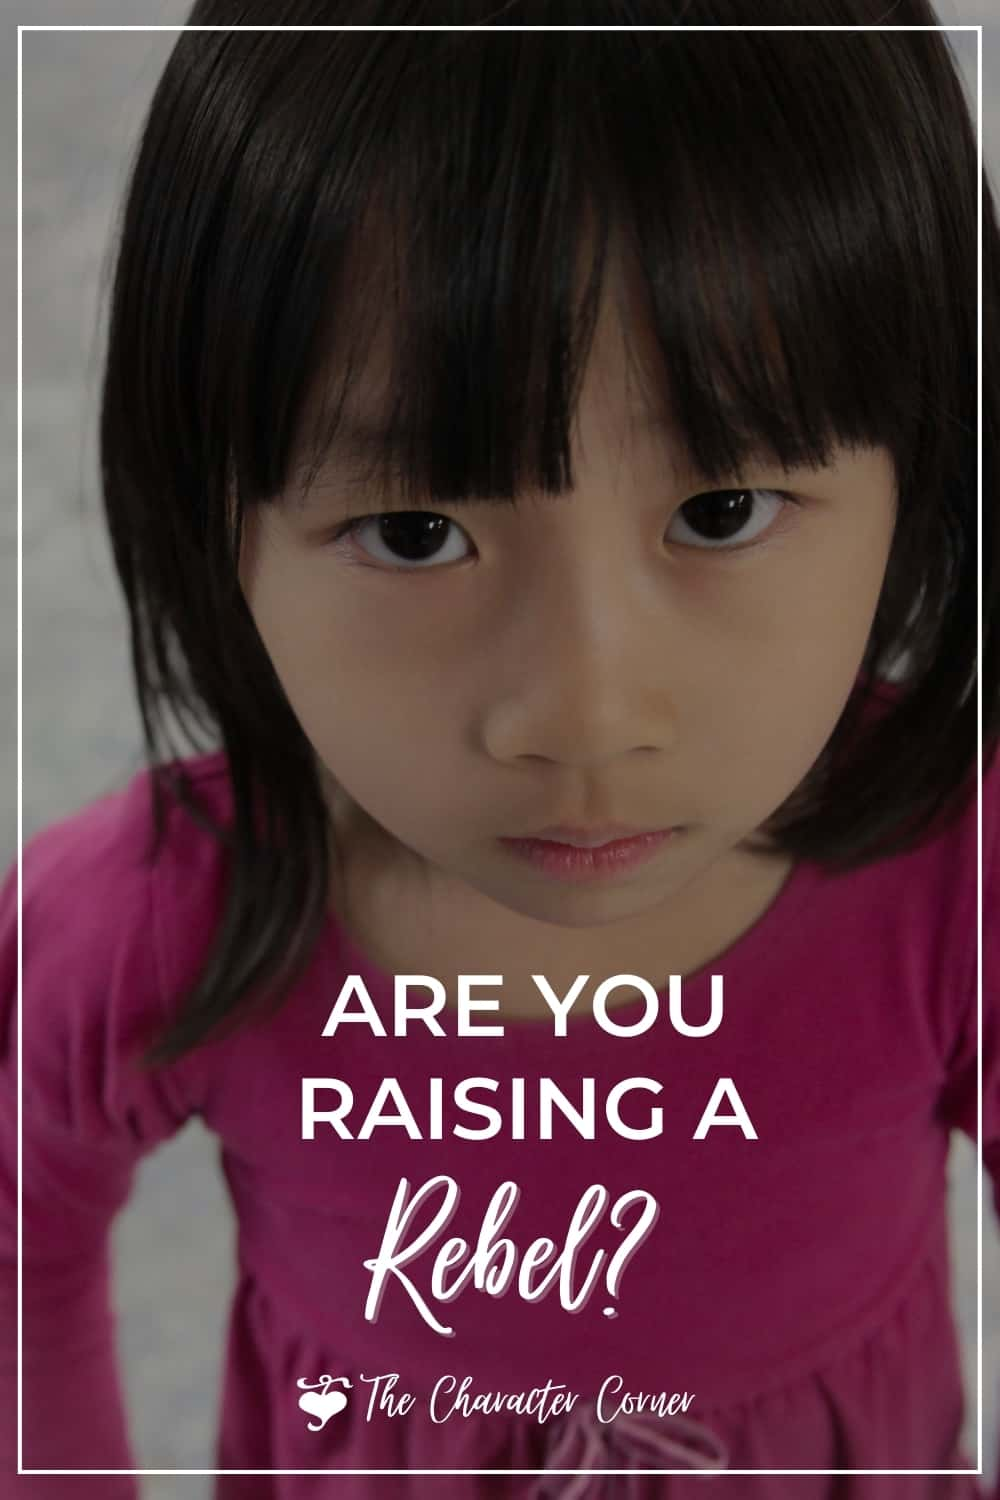 Young girl rebellious towards parents hands on hips pink dress text on image reads Are you raising a rebel